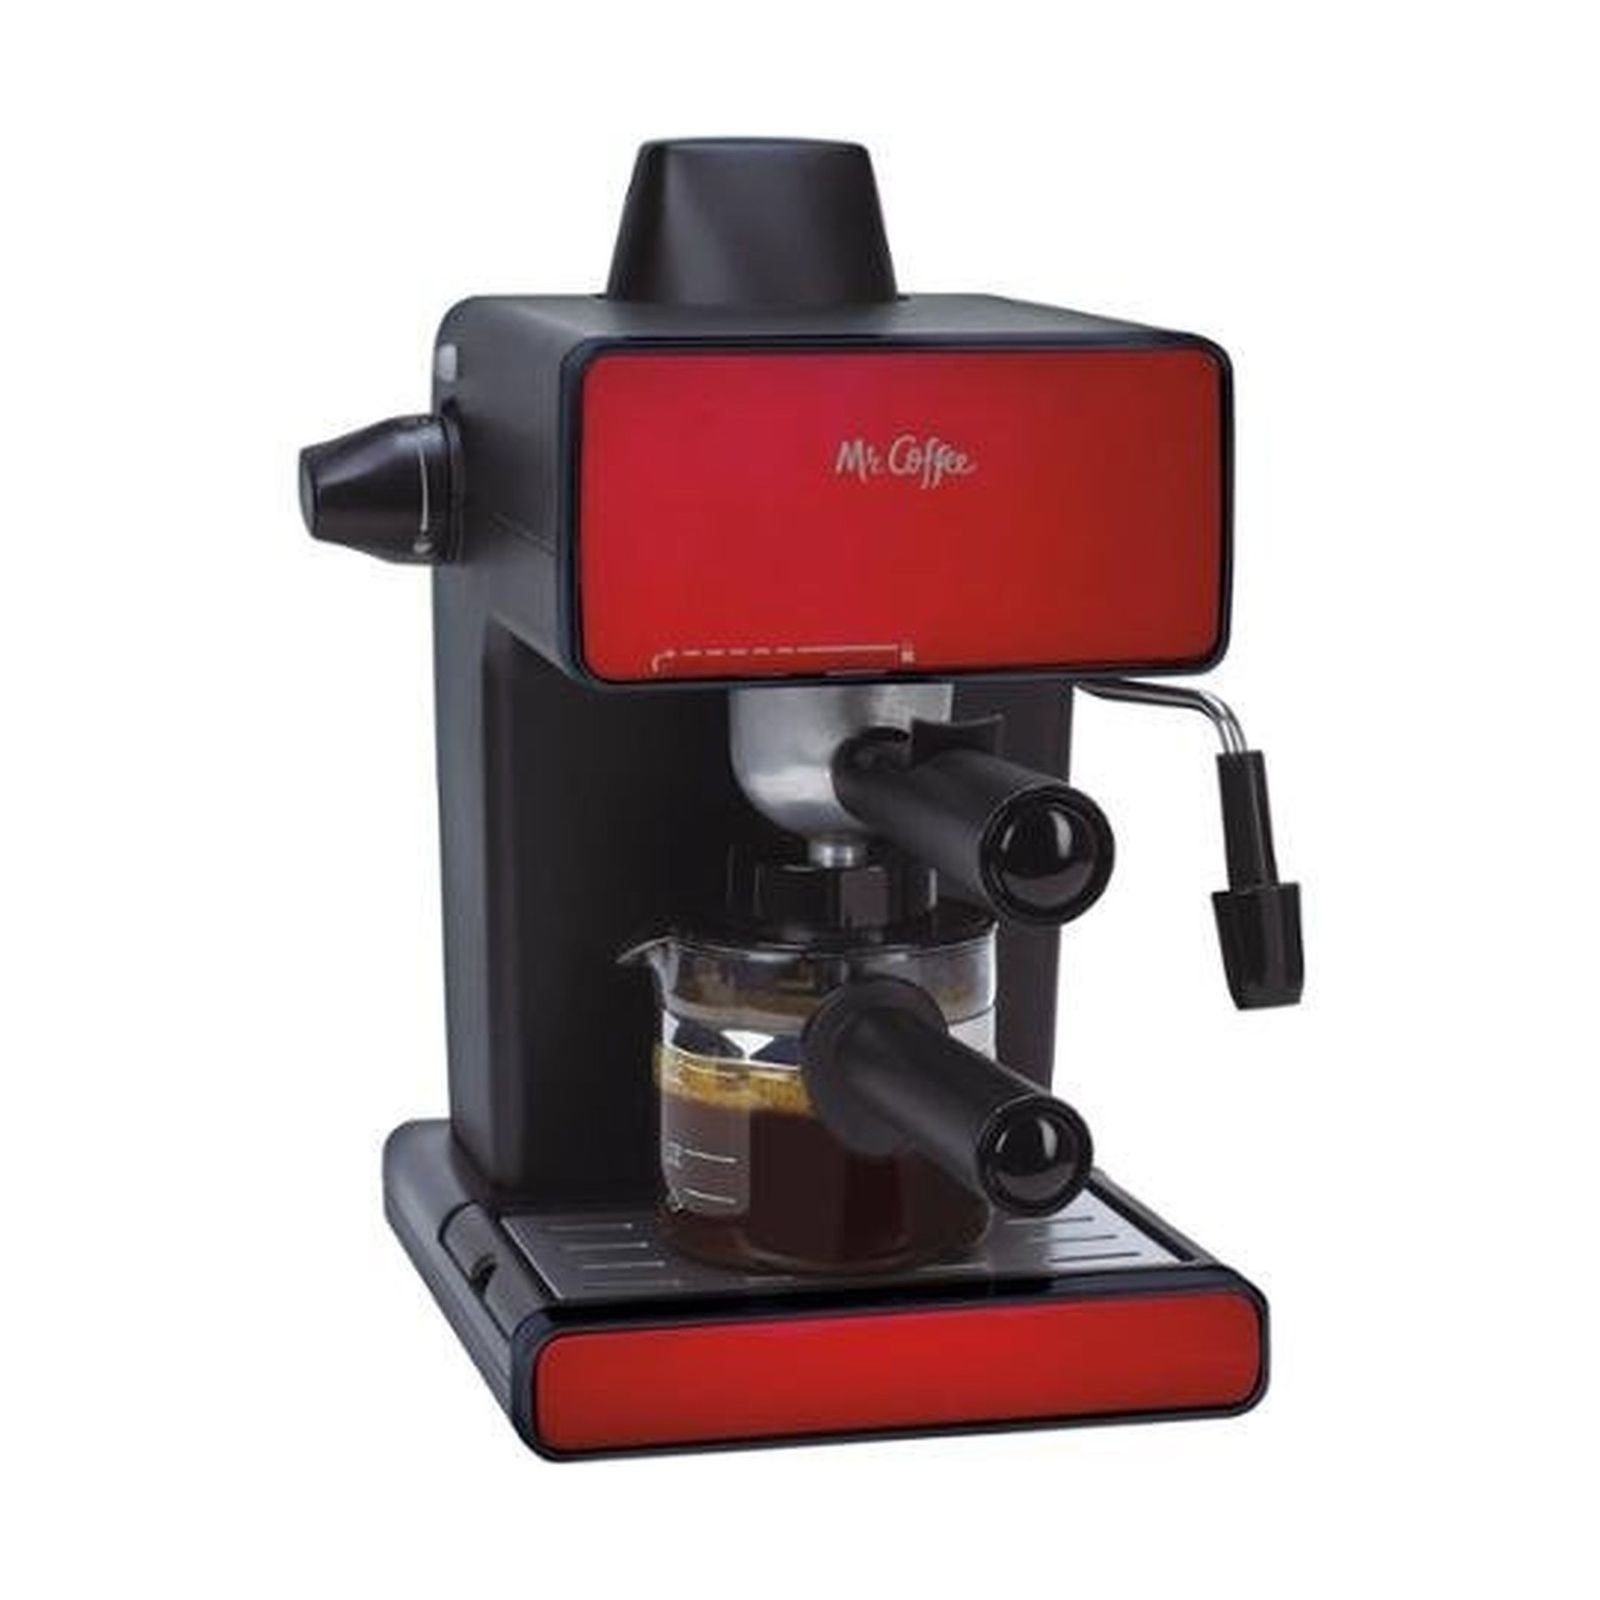 Mr. Coffee Espresso Maker, BVMC-ECM260R, Red by Mr. Coffee